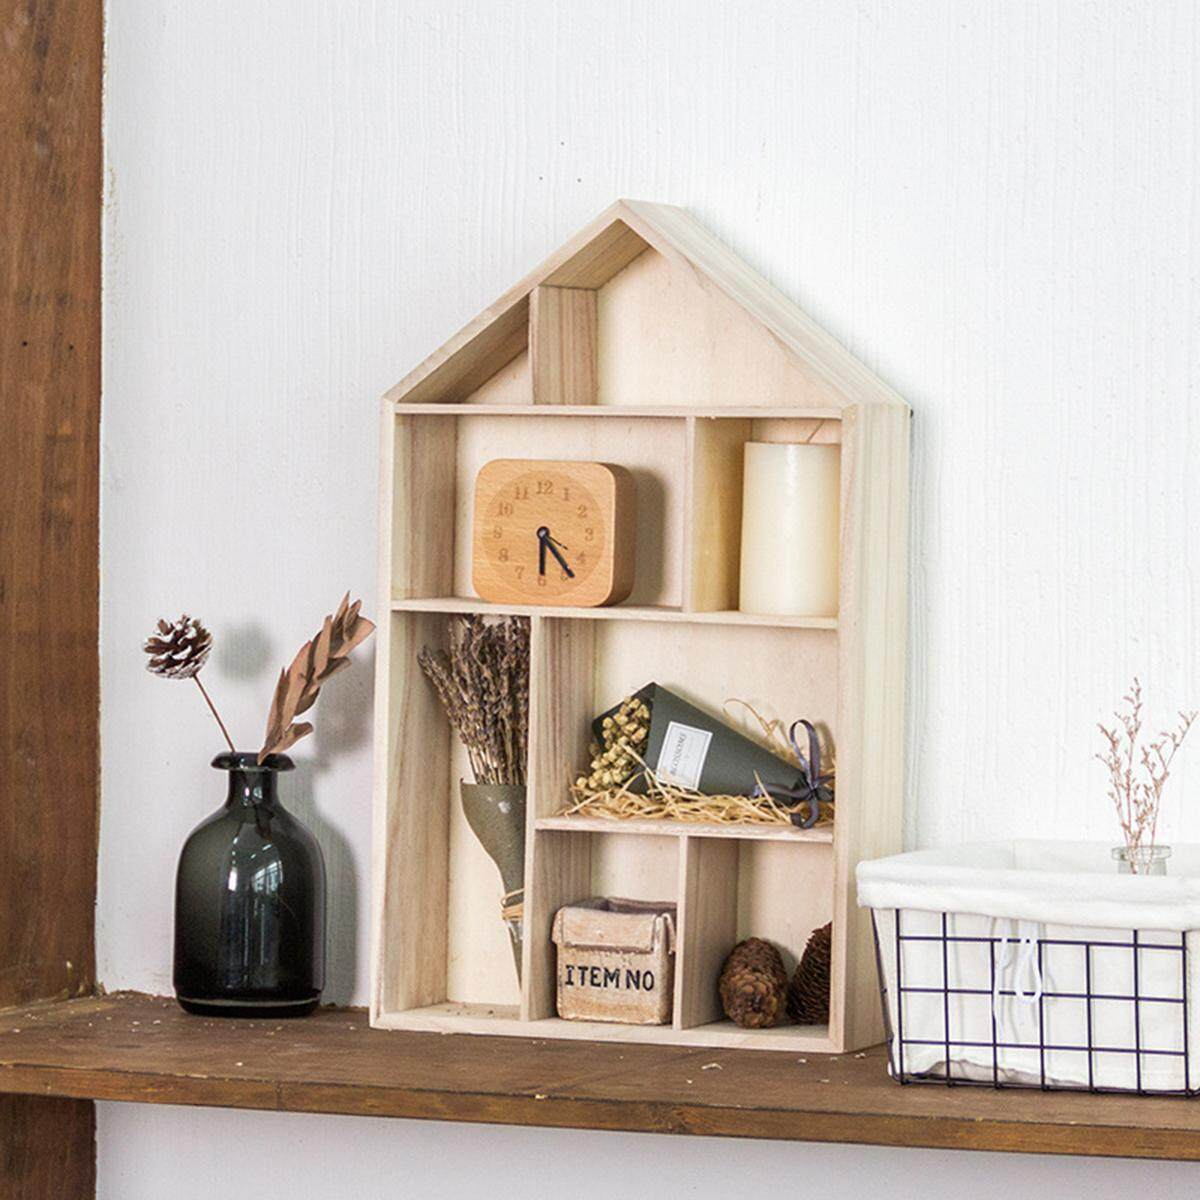 Wall Storage Unit Cube Display Shelf Wooden House Shape 8 Compartment Decor